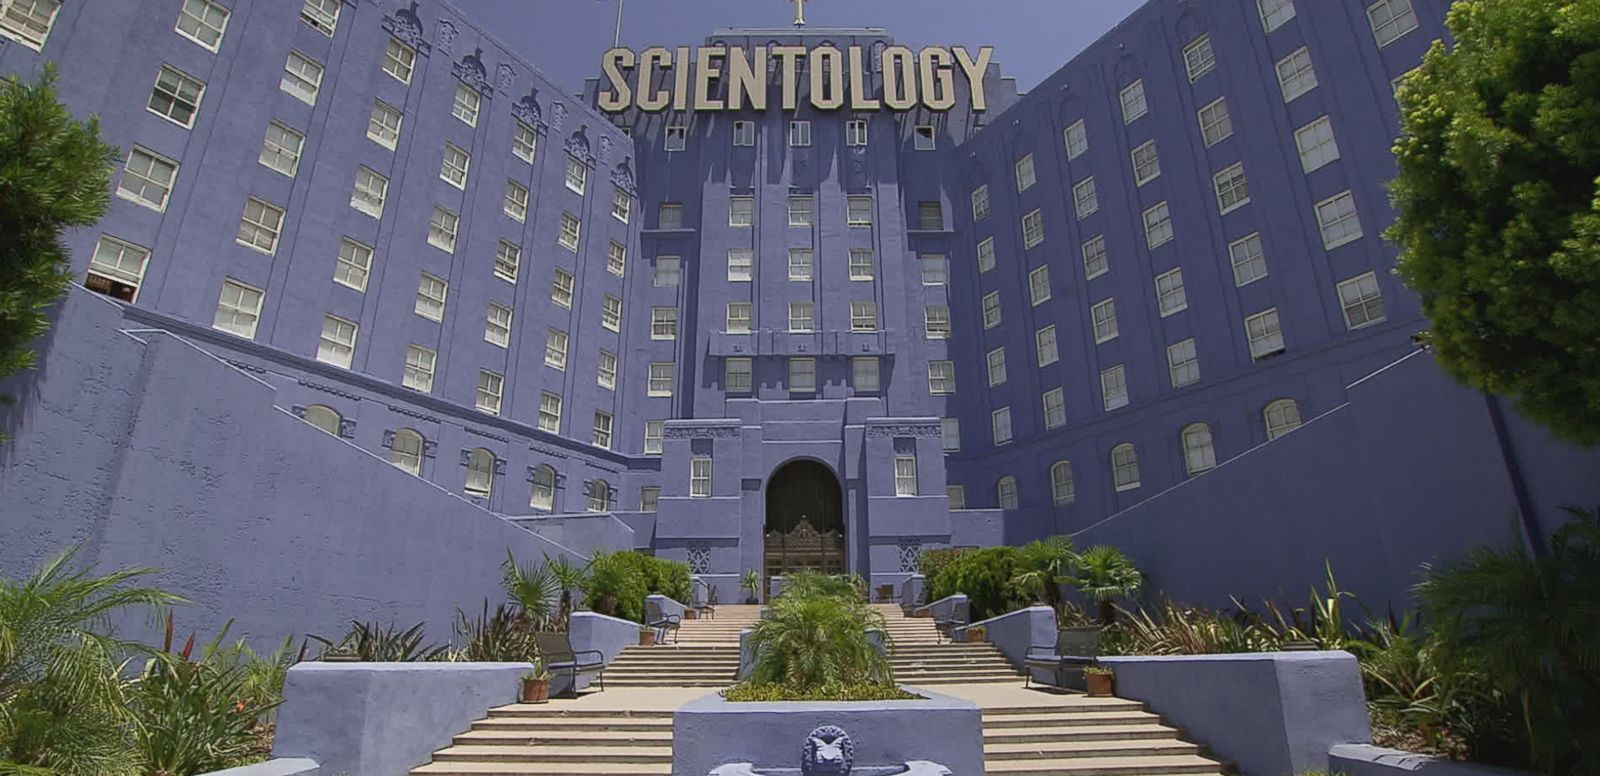 VIDEO:'Going Clear' on Scientology: Inside the Mysterious Church Popular in Hollywood